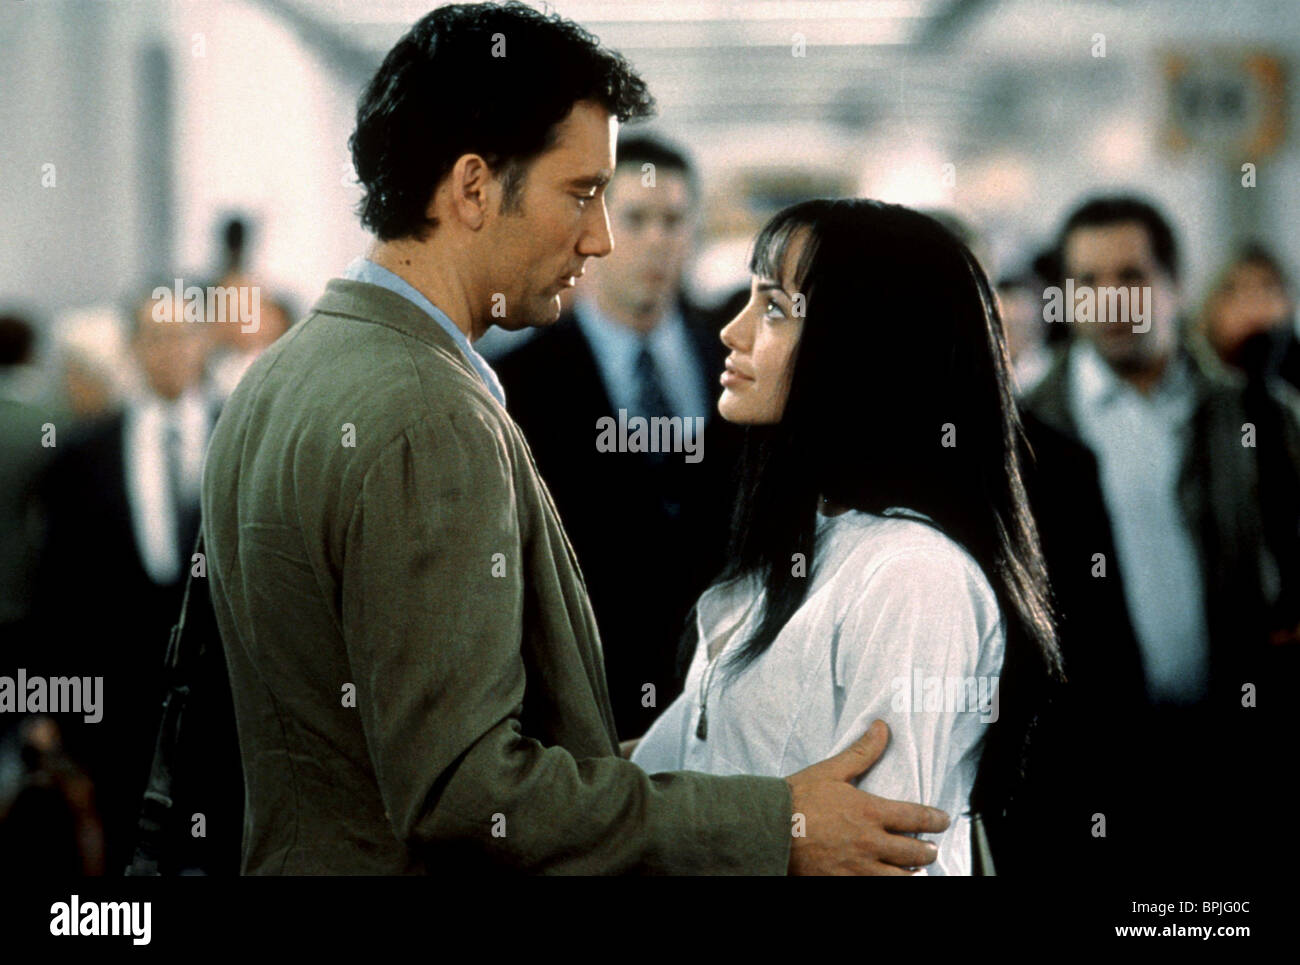 Angelina Jolie Beyond Borders clive owen, angelina jolie, beyond borders, 2003 stock photo